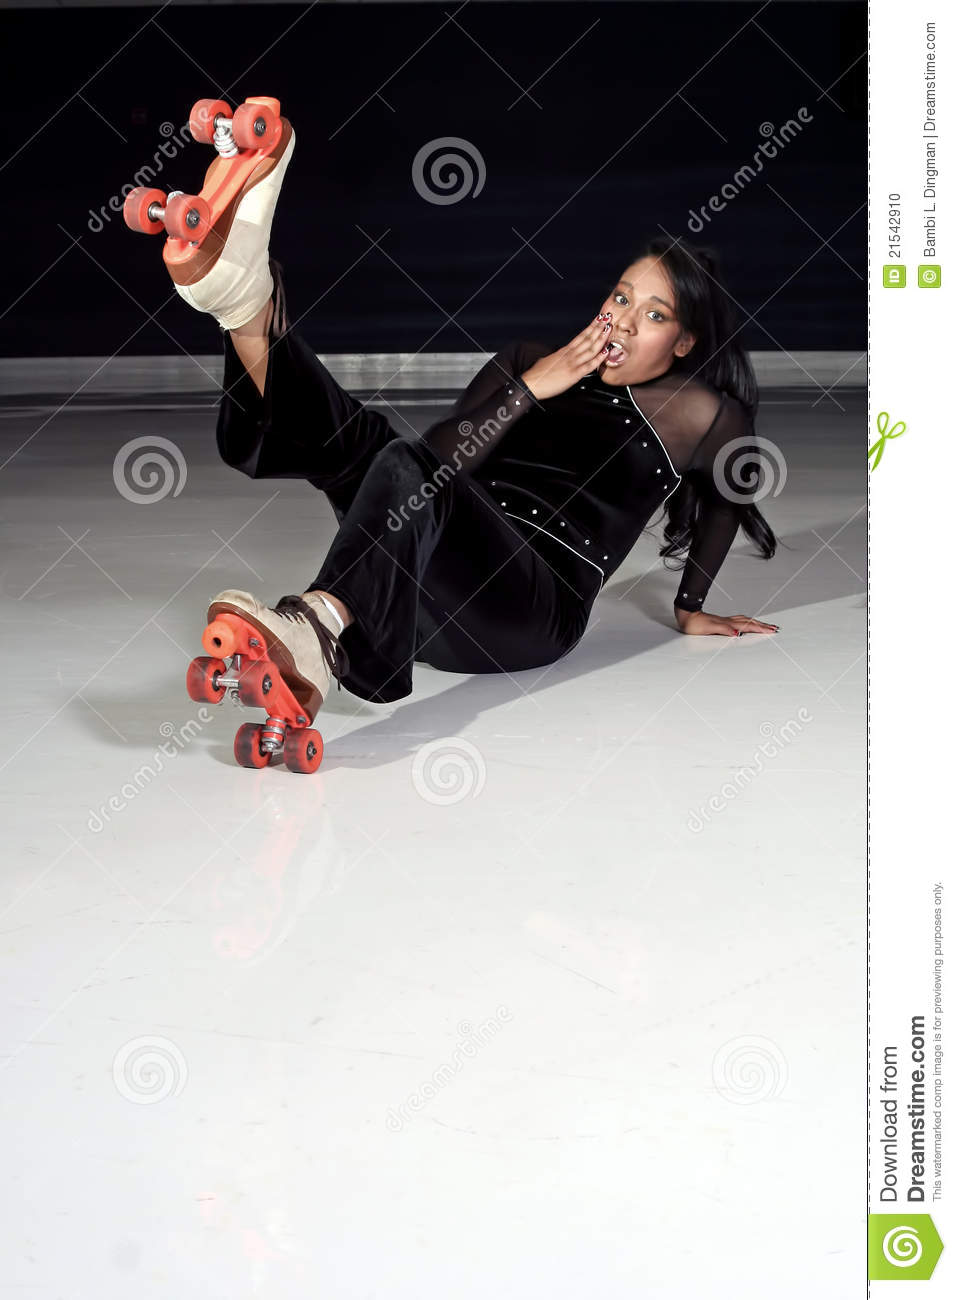 roller skating girl slips and falls on the rink.